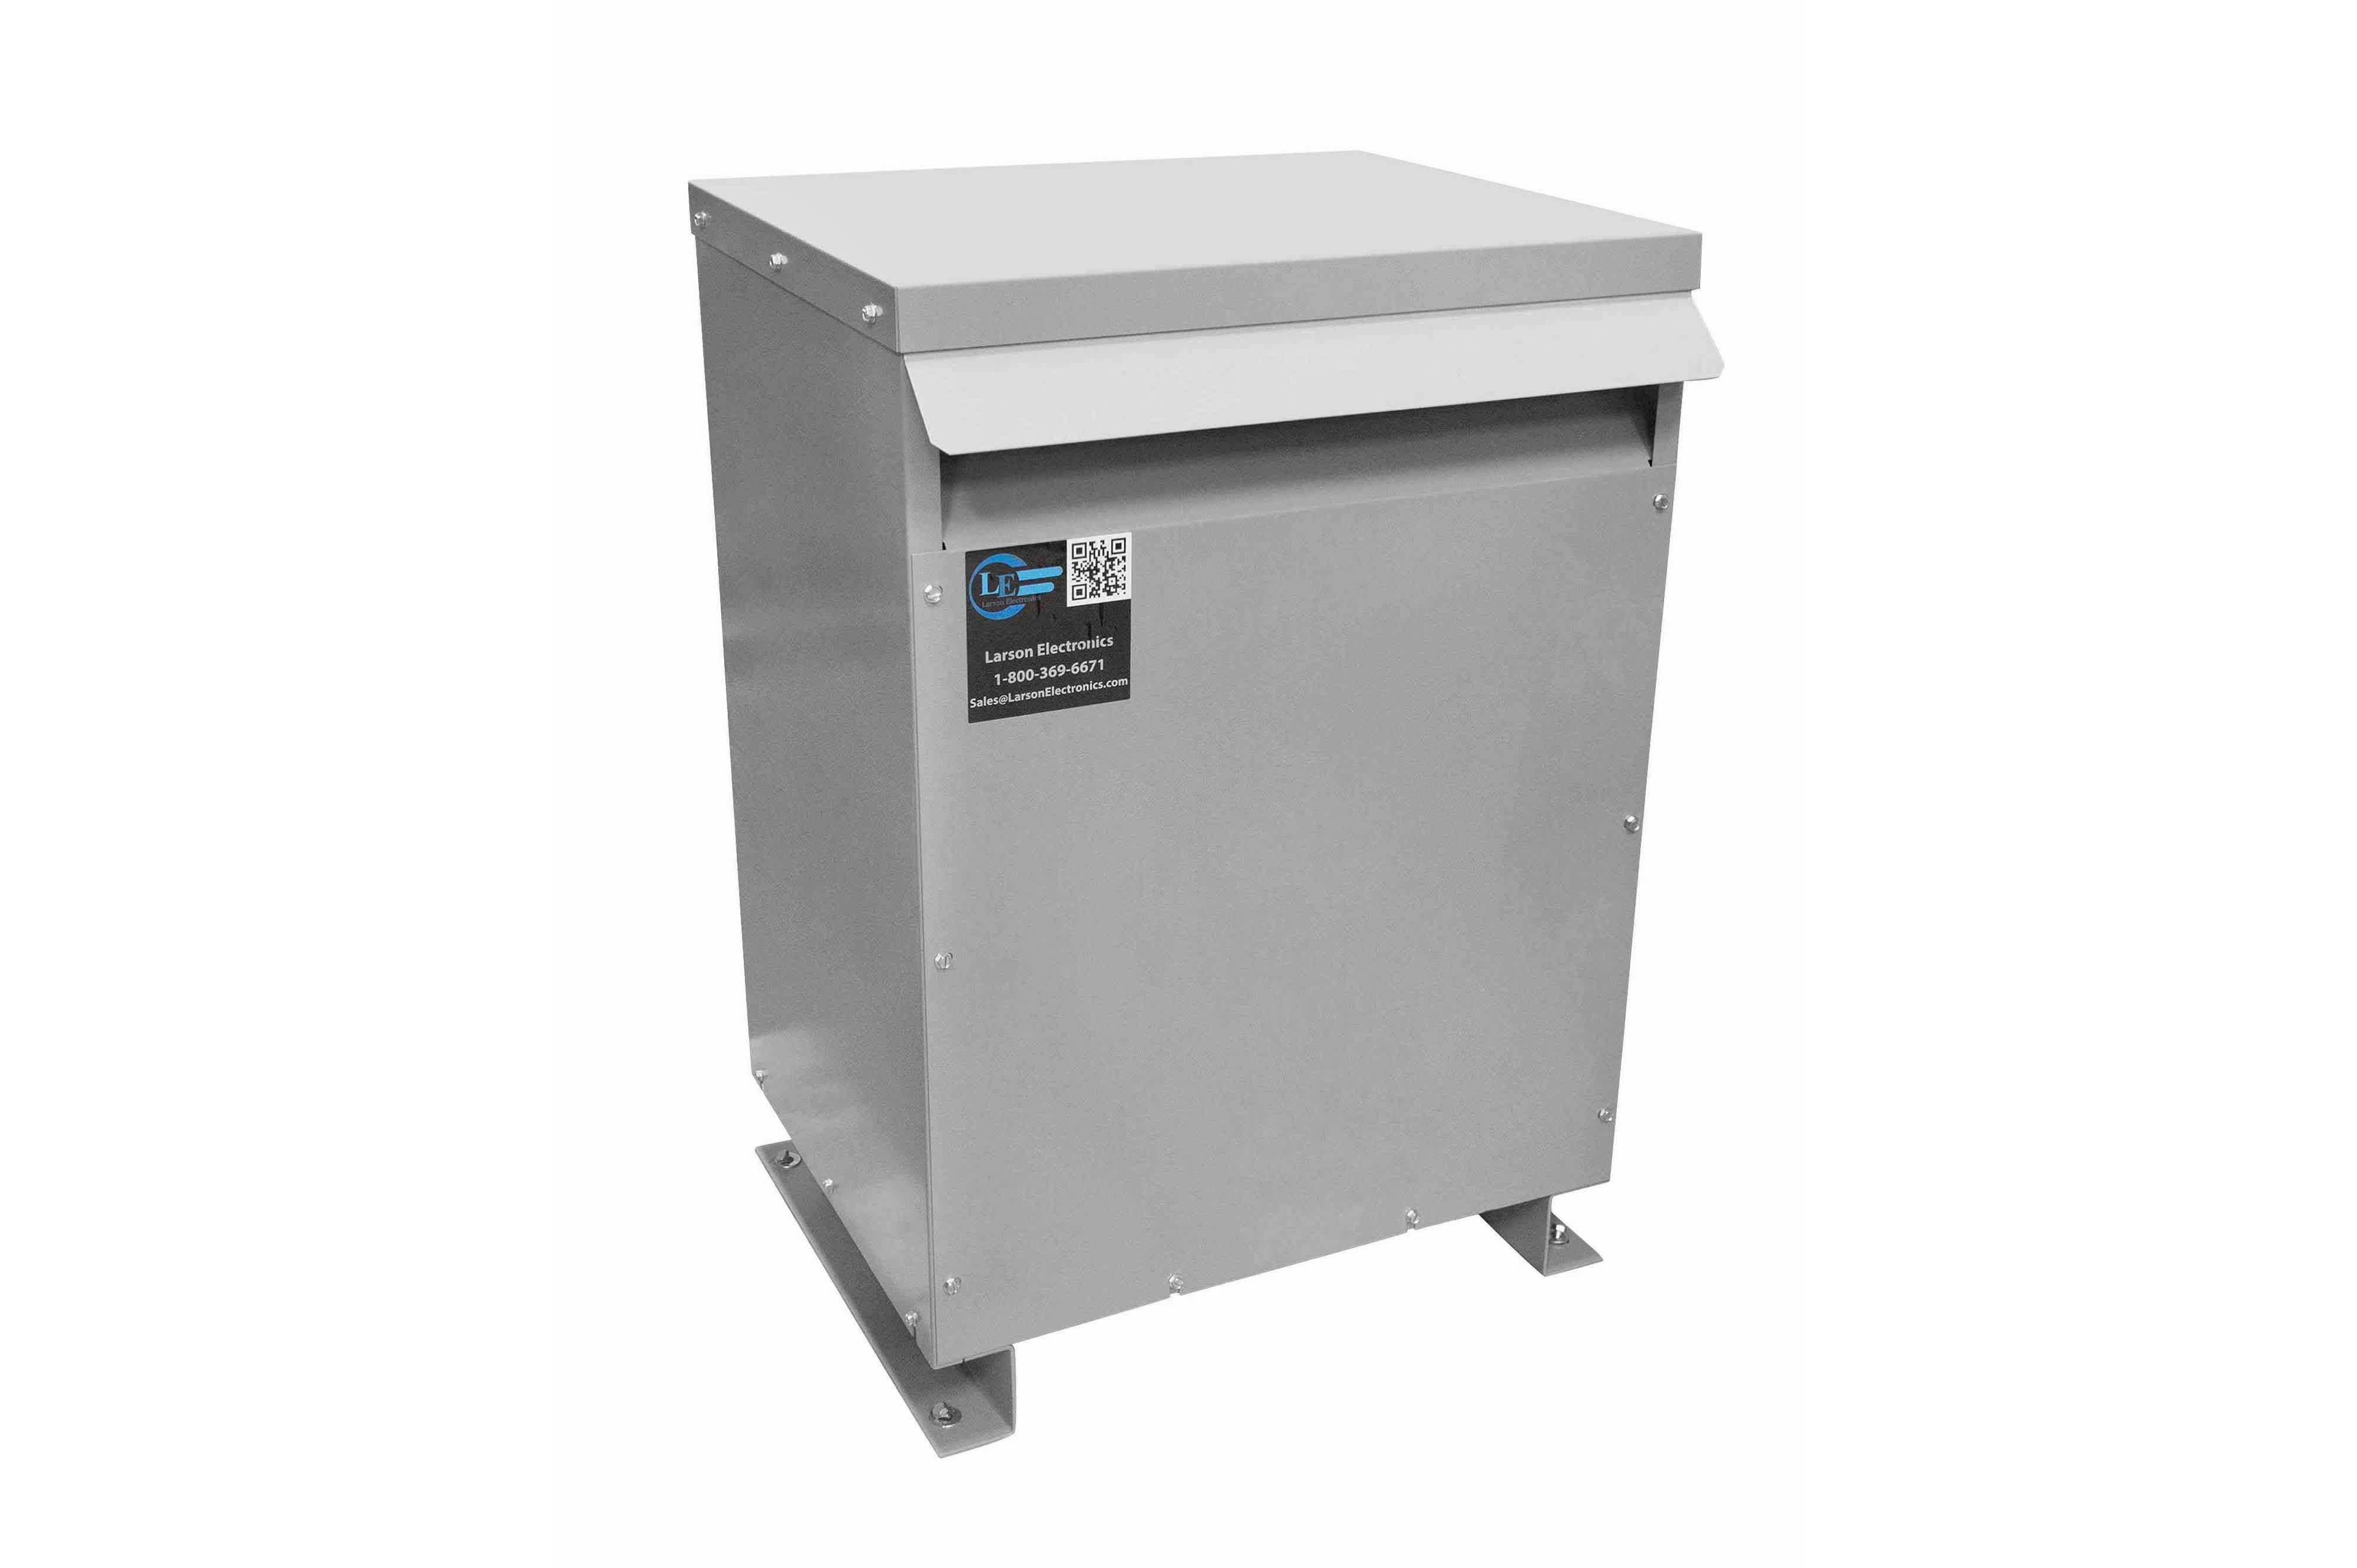 125 kVA 3PH Isolation Transformer, 575V Wye Primary, 480V Delta Secondary, N3R, Ventilated, 60 Hz